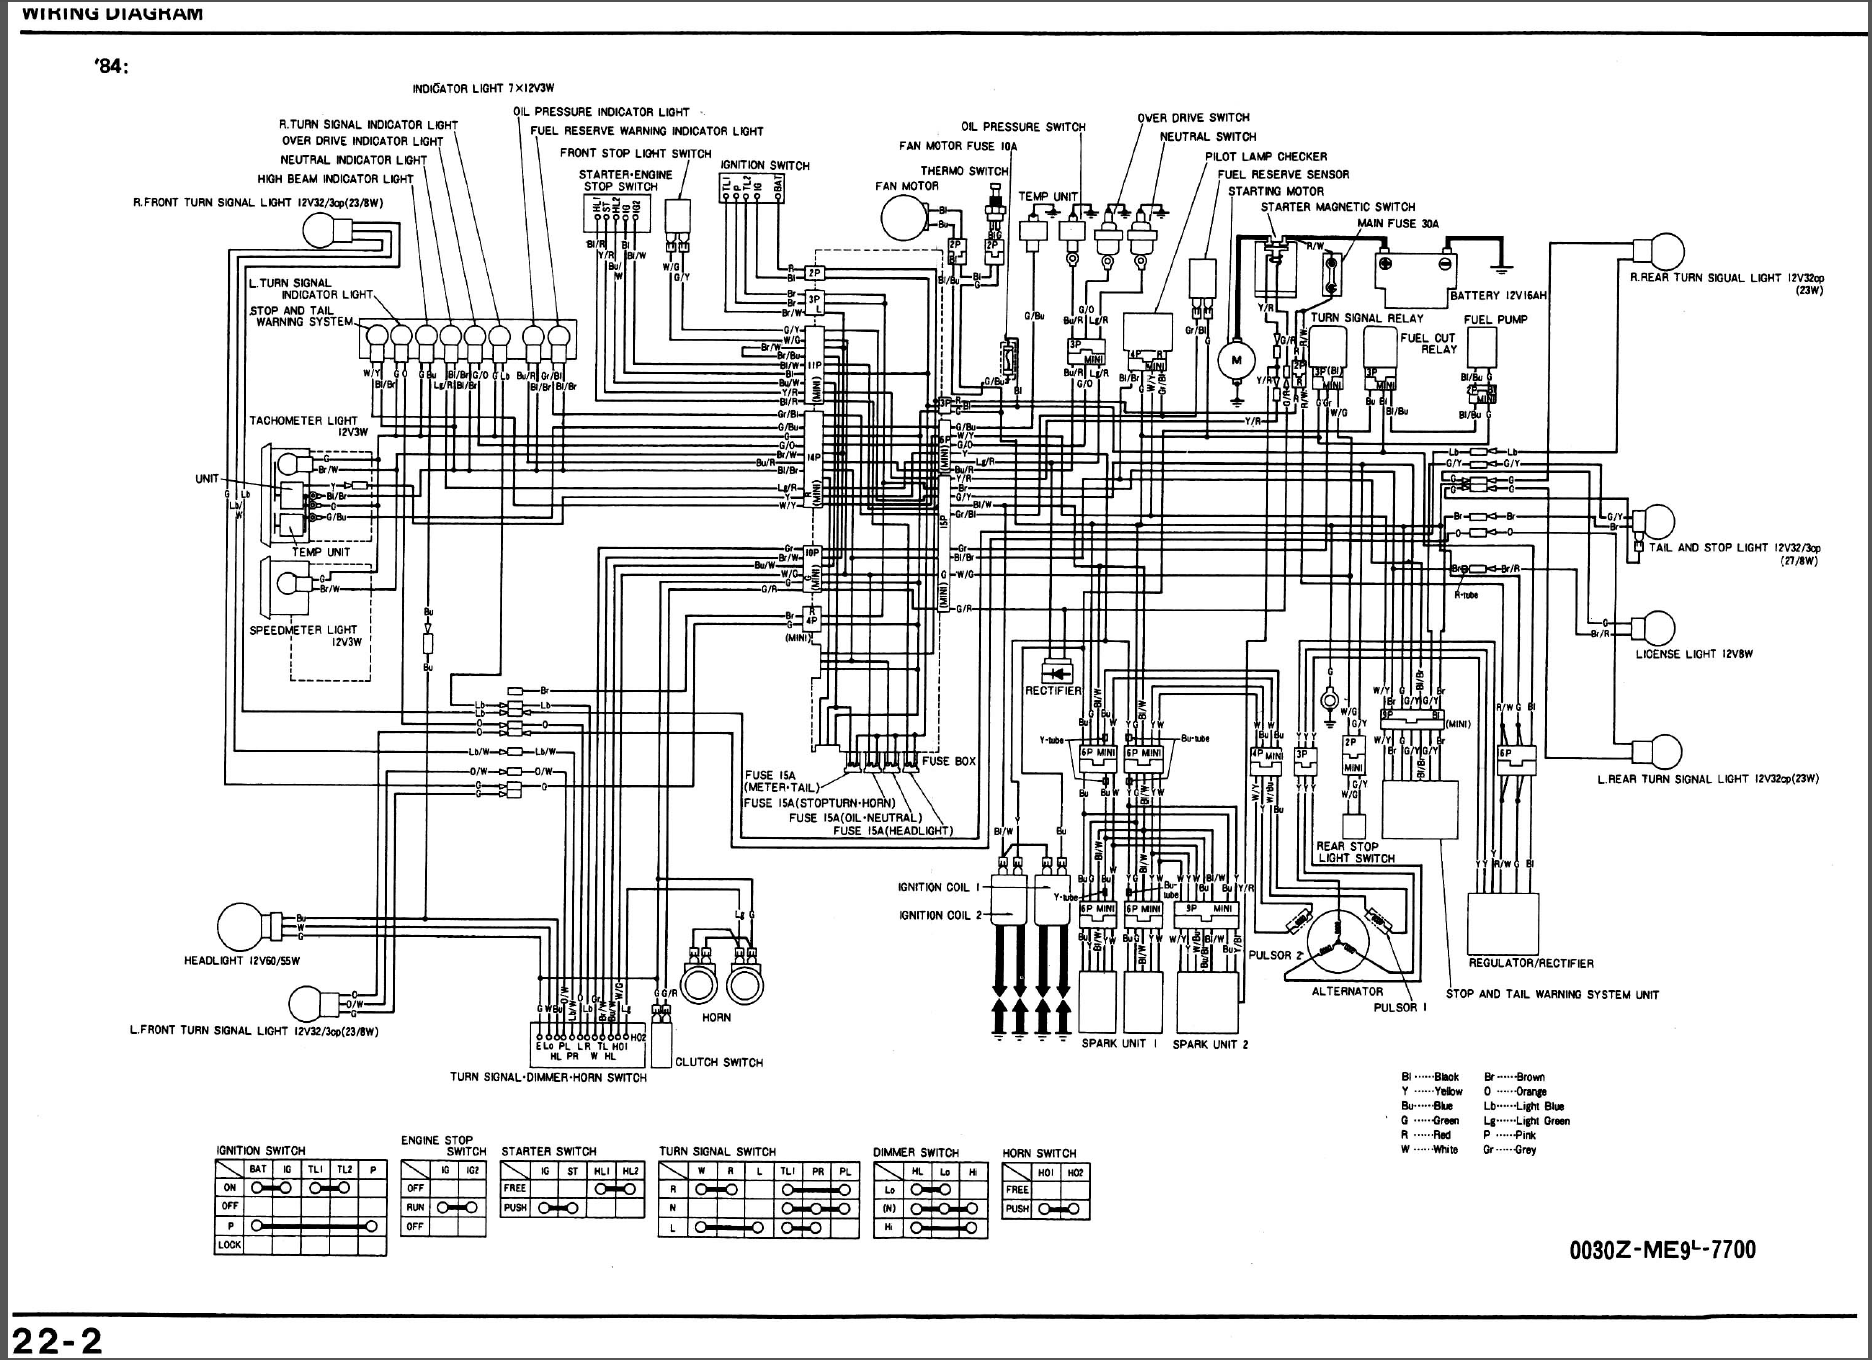 System Of A Atv Ignition Wiring Diagram Electrical Schematics Honda Ft500 Product Diagrams U2022 110 Quad